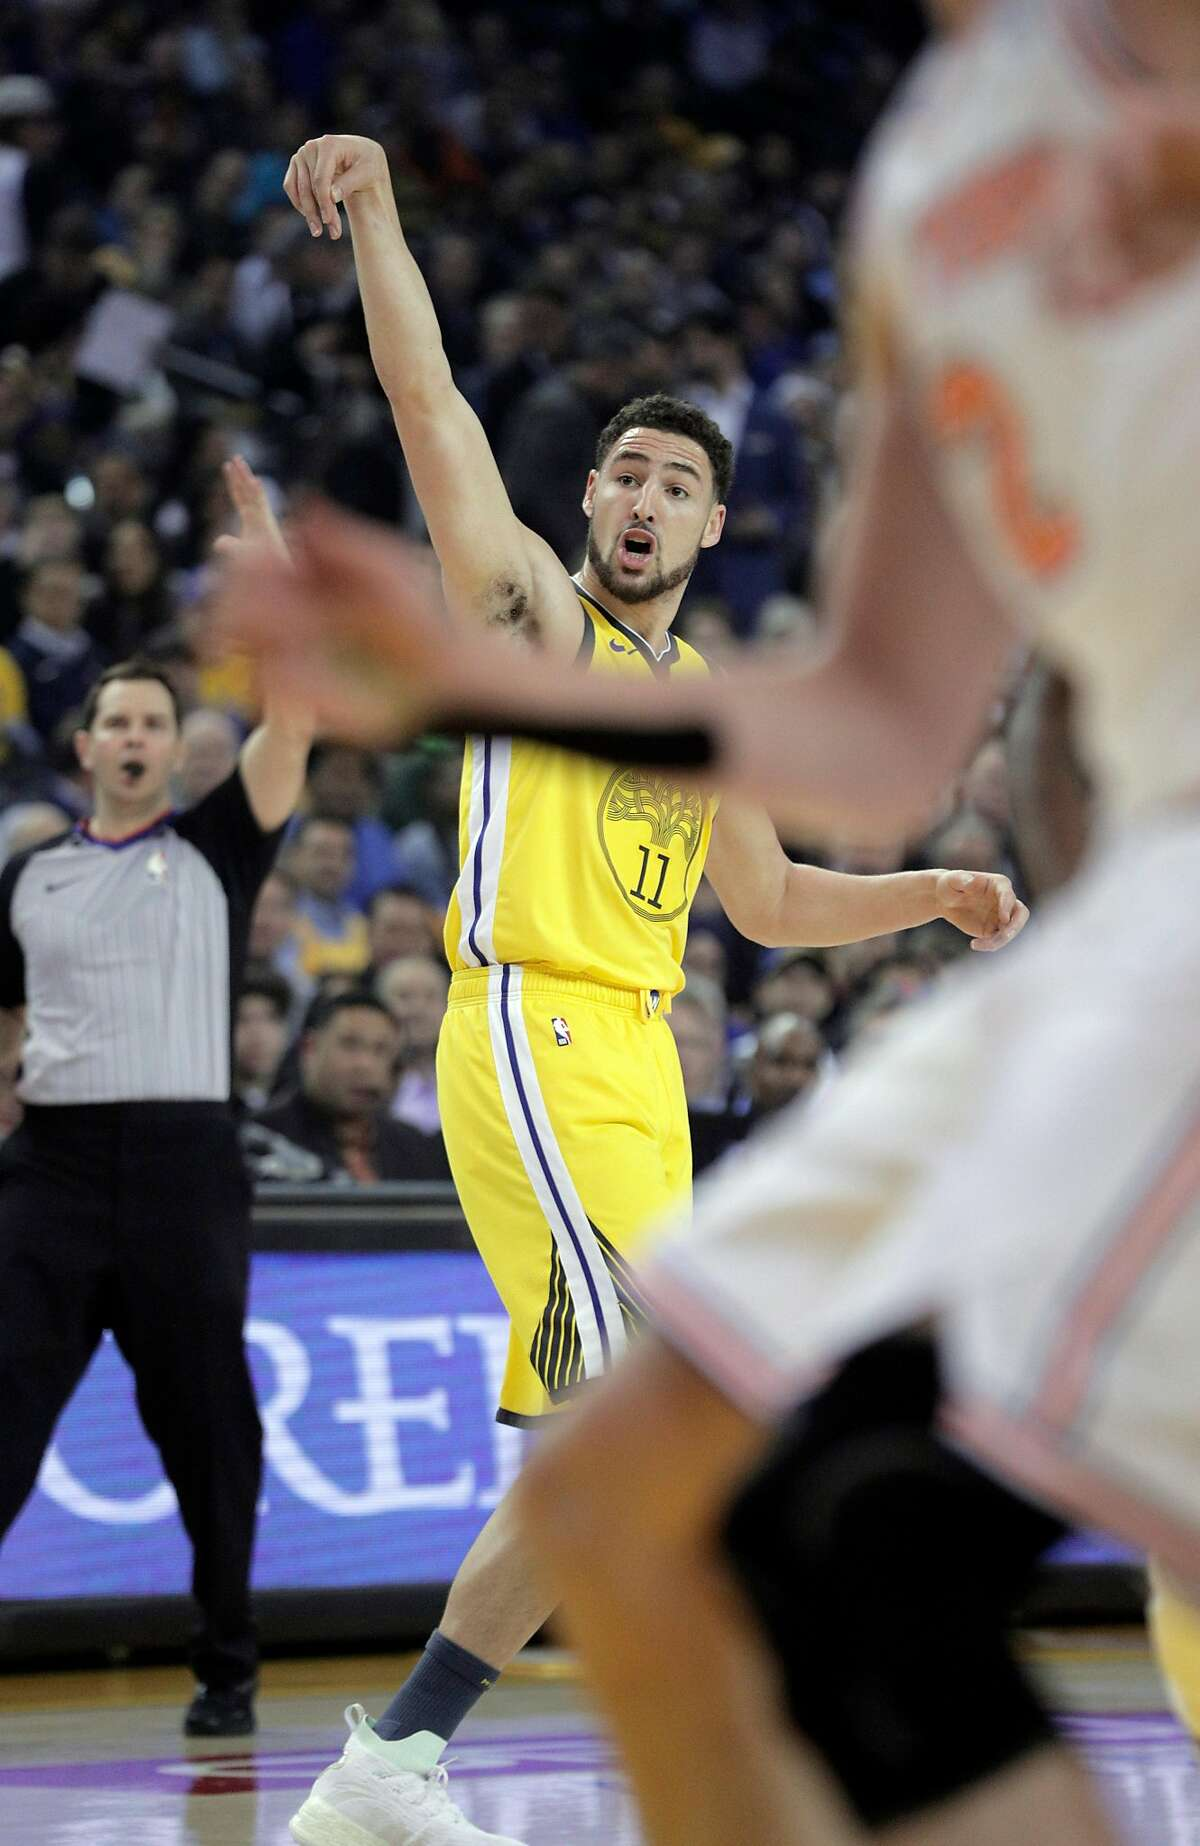 Klay Thompson (11) watches his shot go in in the first half as the Golden State Warriors played the New York Knicks at Oracle Arena in Oakland, Calif., on Tuesday, January 8, 2019.